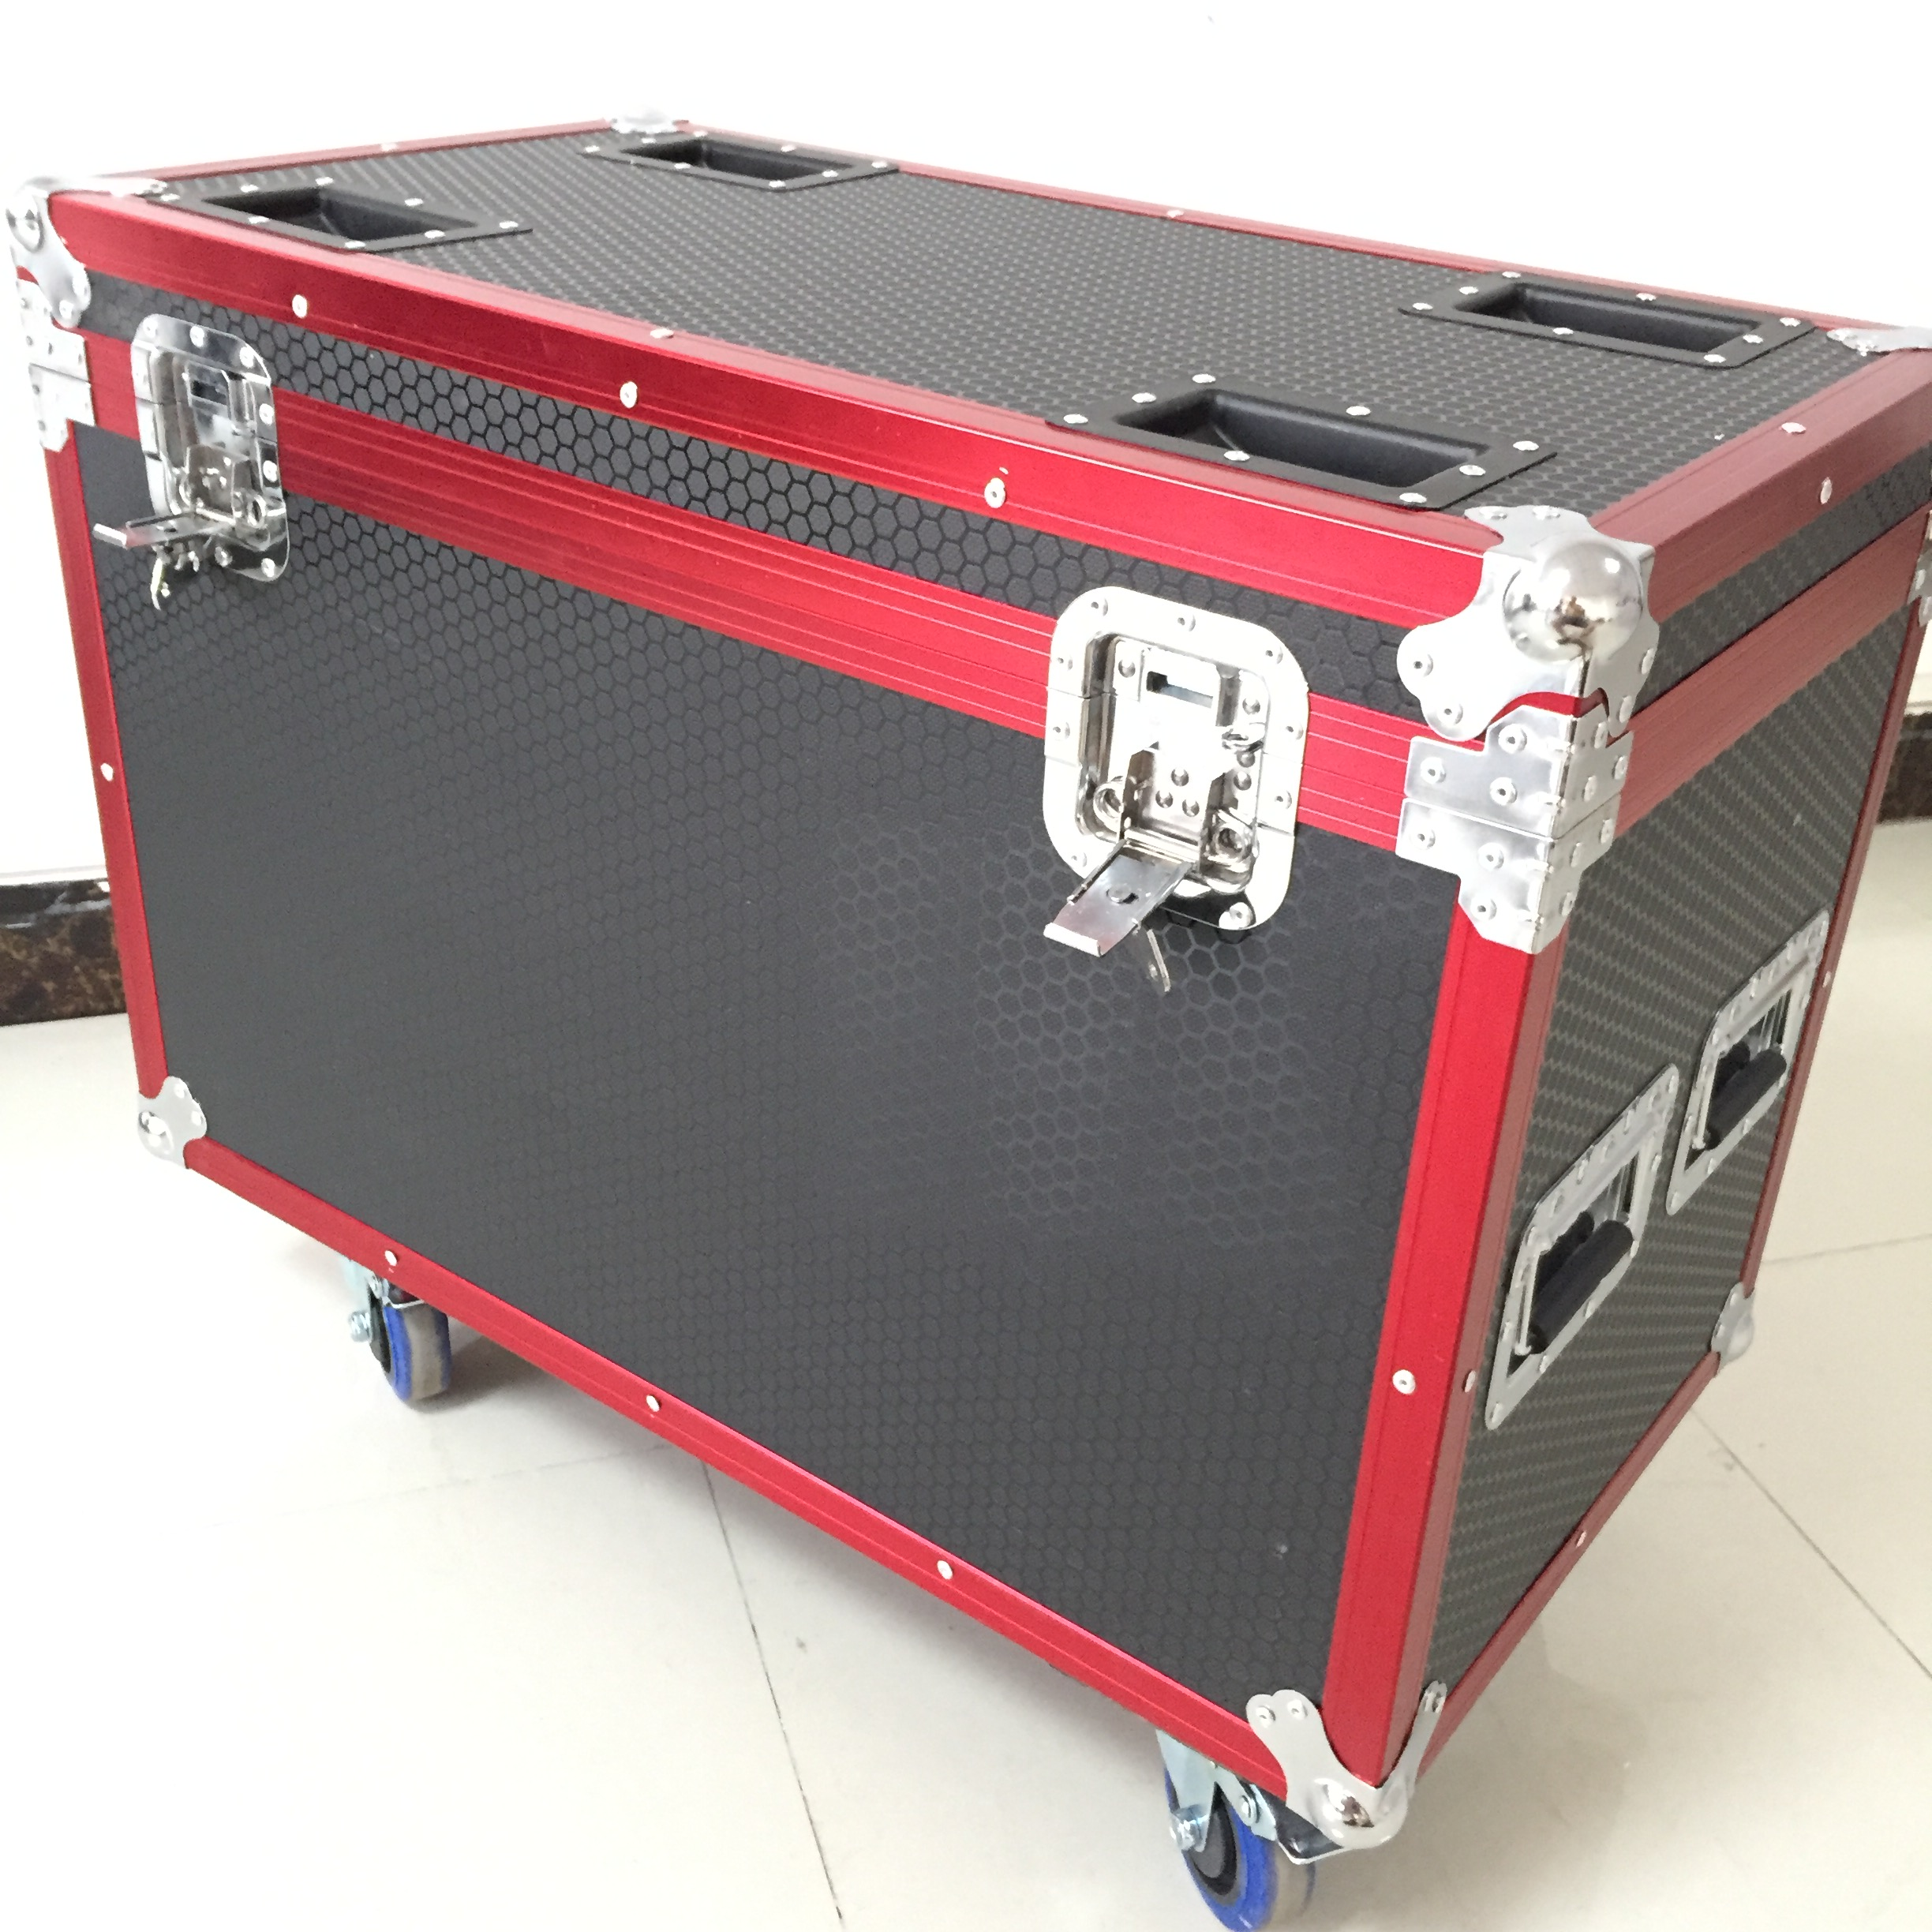 Sharpy <strong>Pointe</strong> 280 Mythos 440 K10 K20 moving head stage lighting event use twin road case flight case